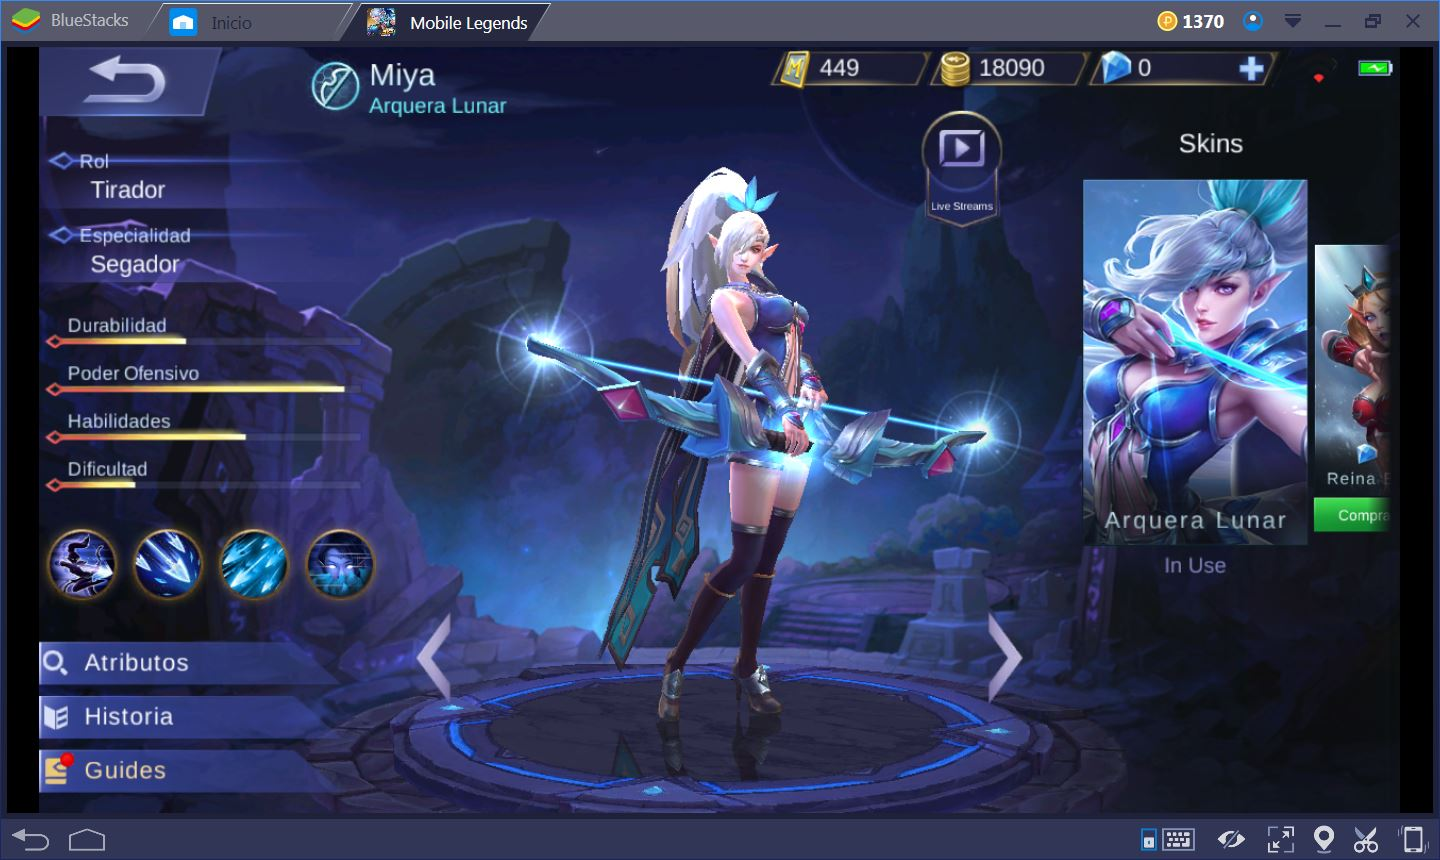 Mobile Legend Tirador Es